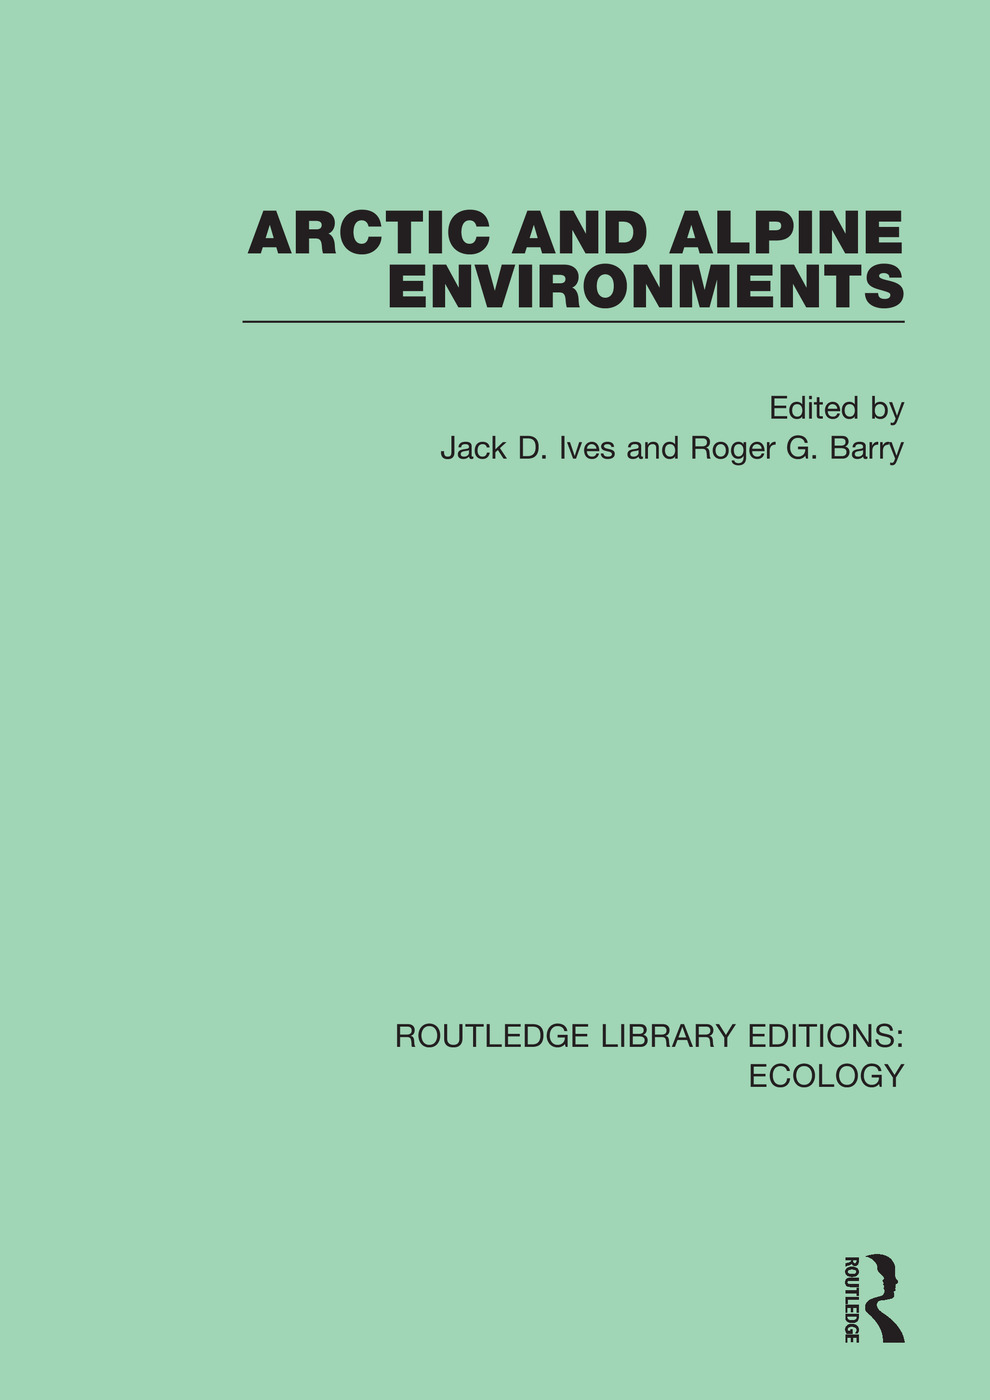 Arctic and Alpine Environments book cover